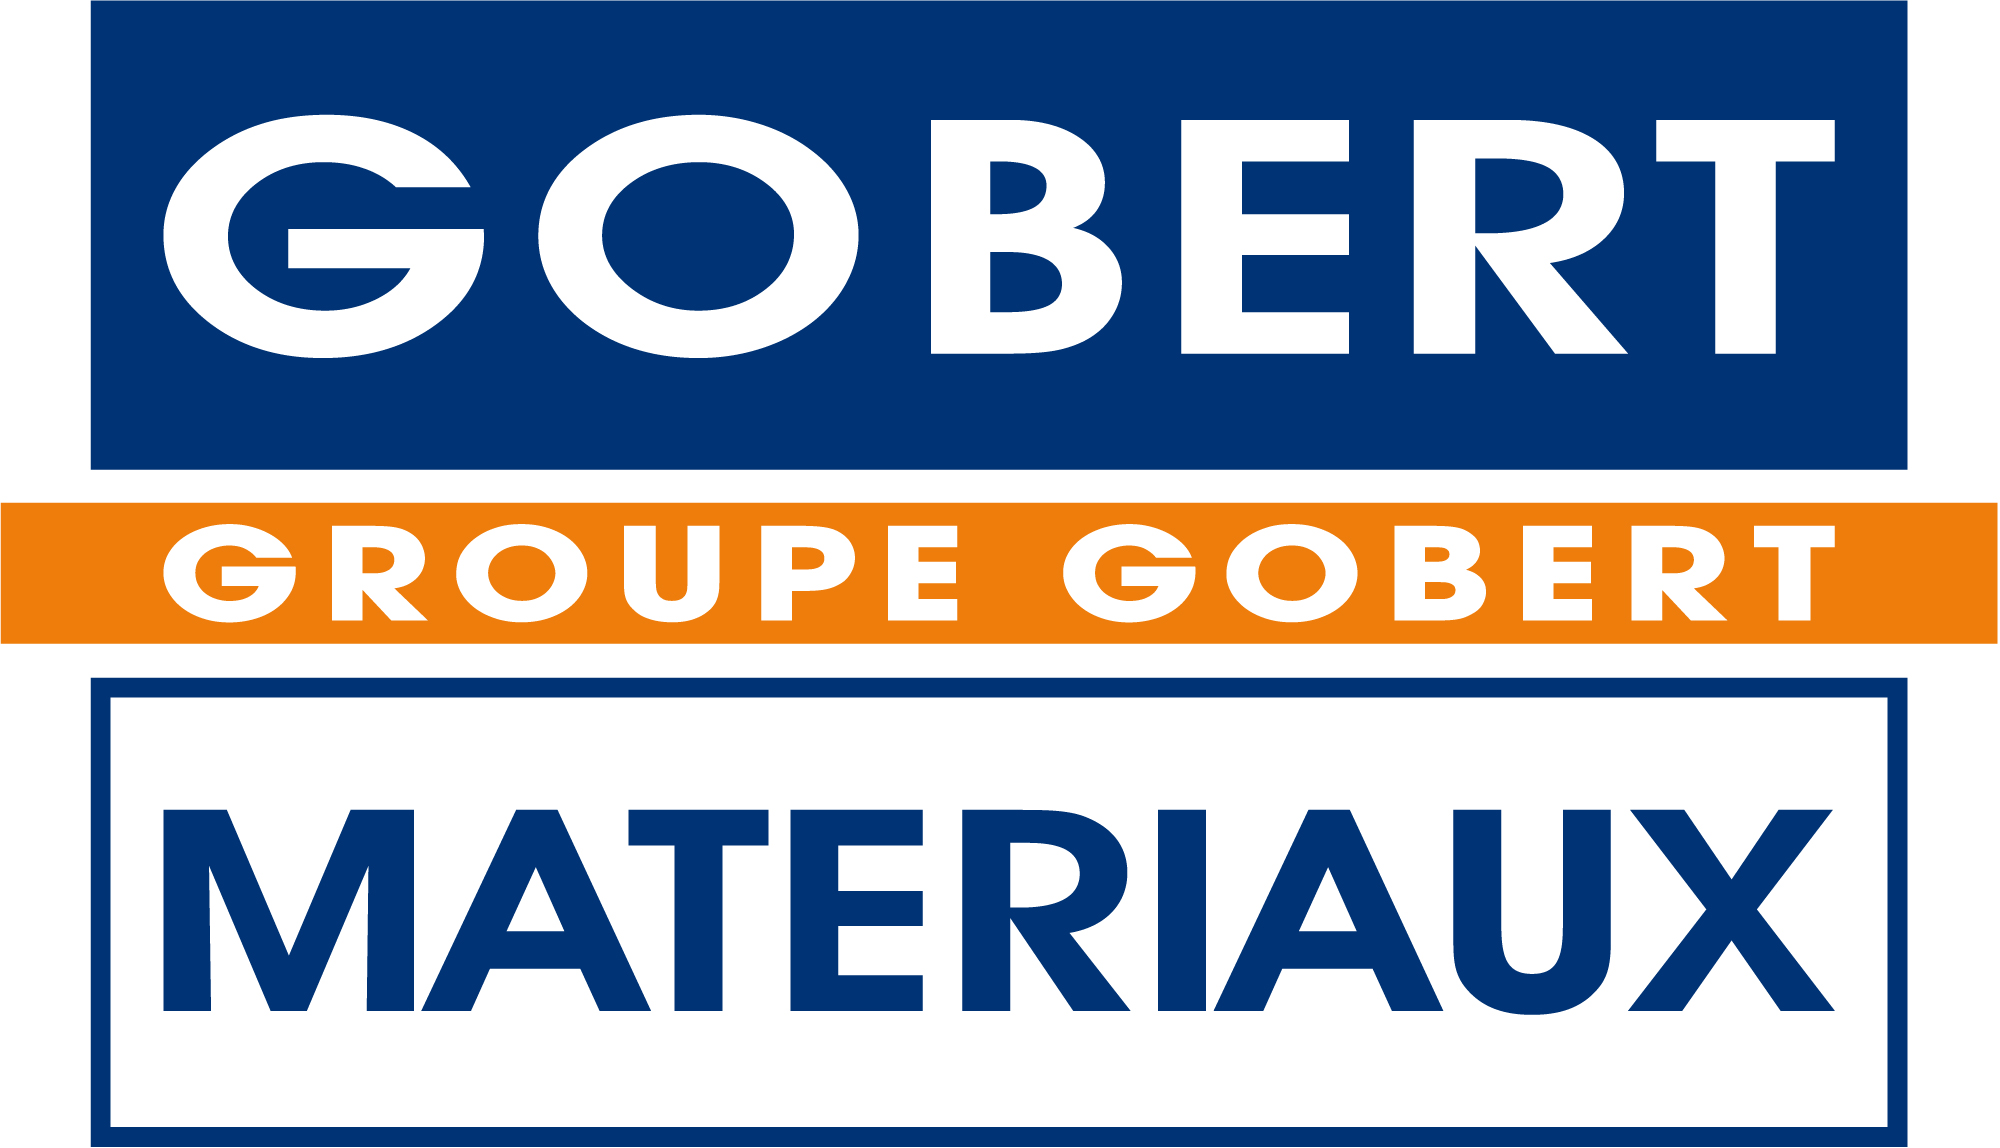 Group Gobert